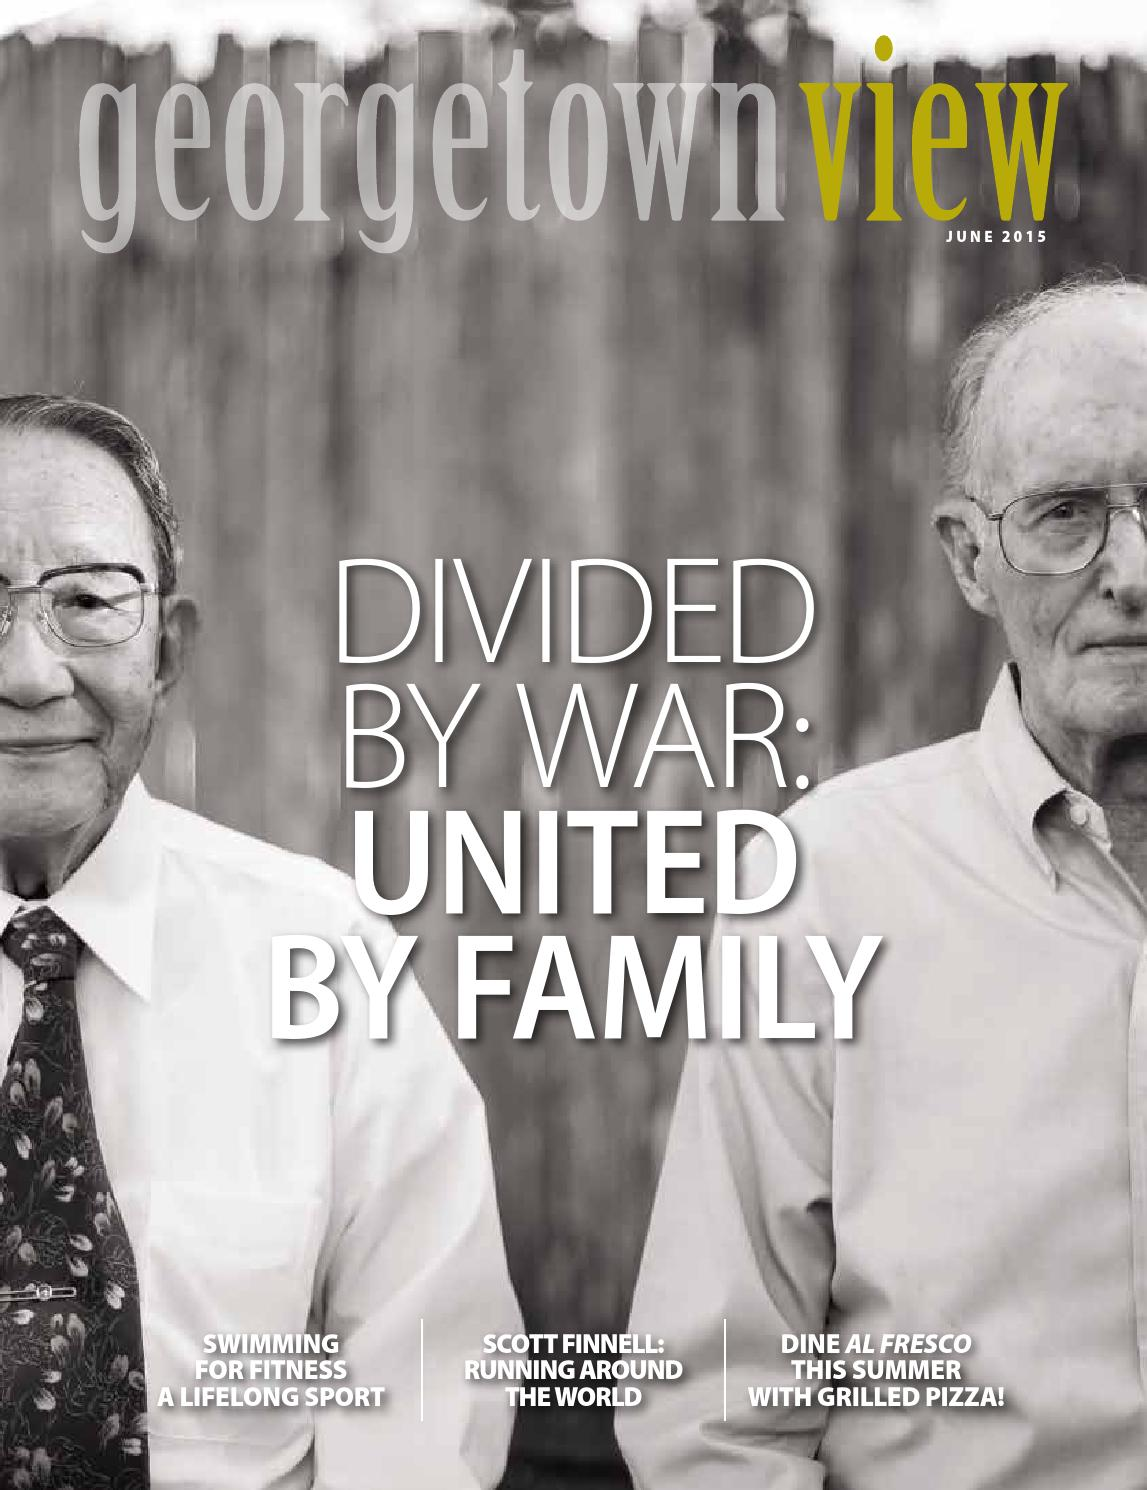 2a60ed77ac28 Georgetown View Magazine  June 2015 by Georgetown View - issuu